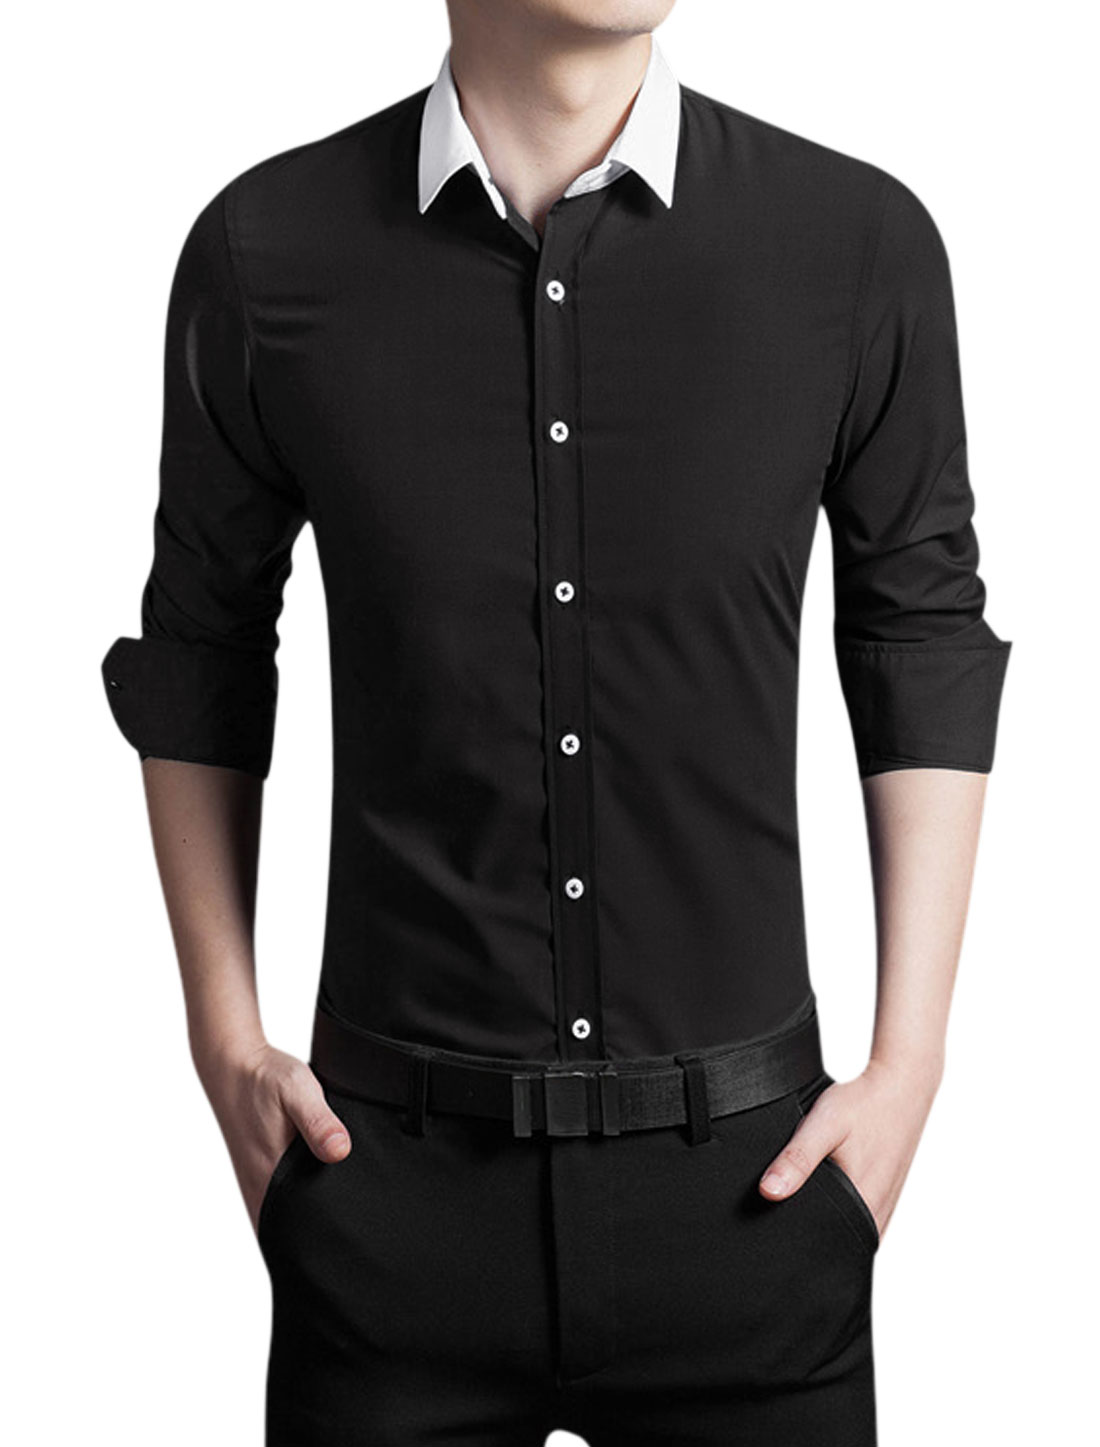 Man Point Collar Button Front Slim Fit Long Sleeves Shirt Black M